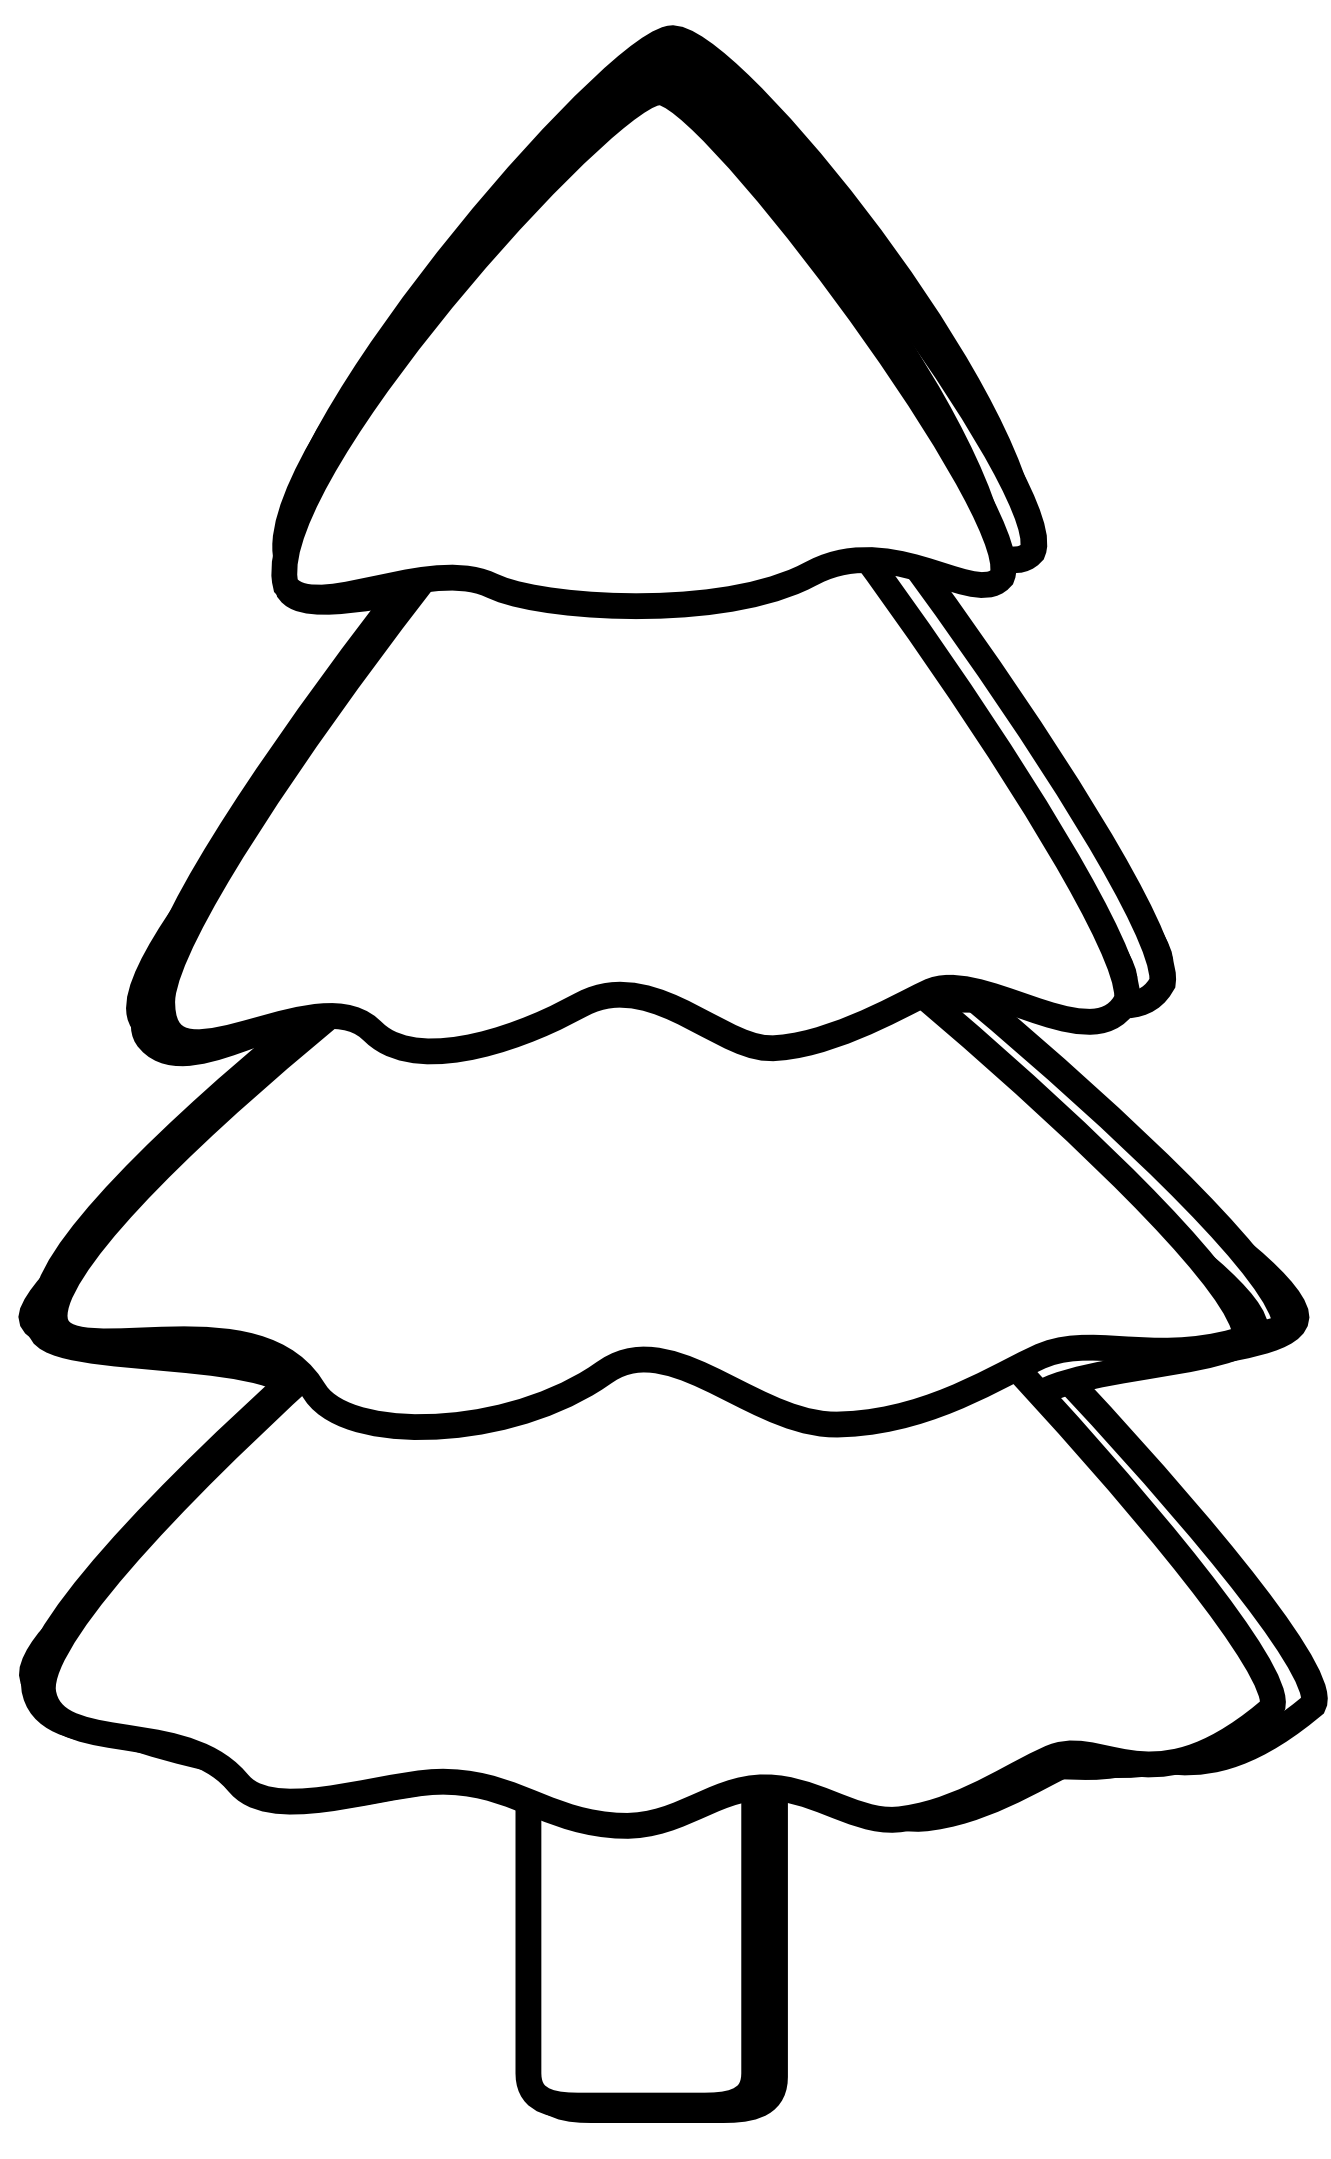 christmas tree clip art black and white google search christmas rh pinterest co uk christmas tree clipart black and white free images for clipart christmas tree black and white